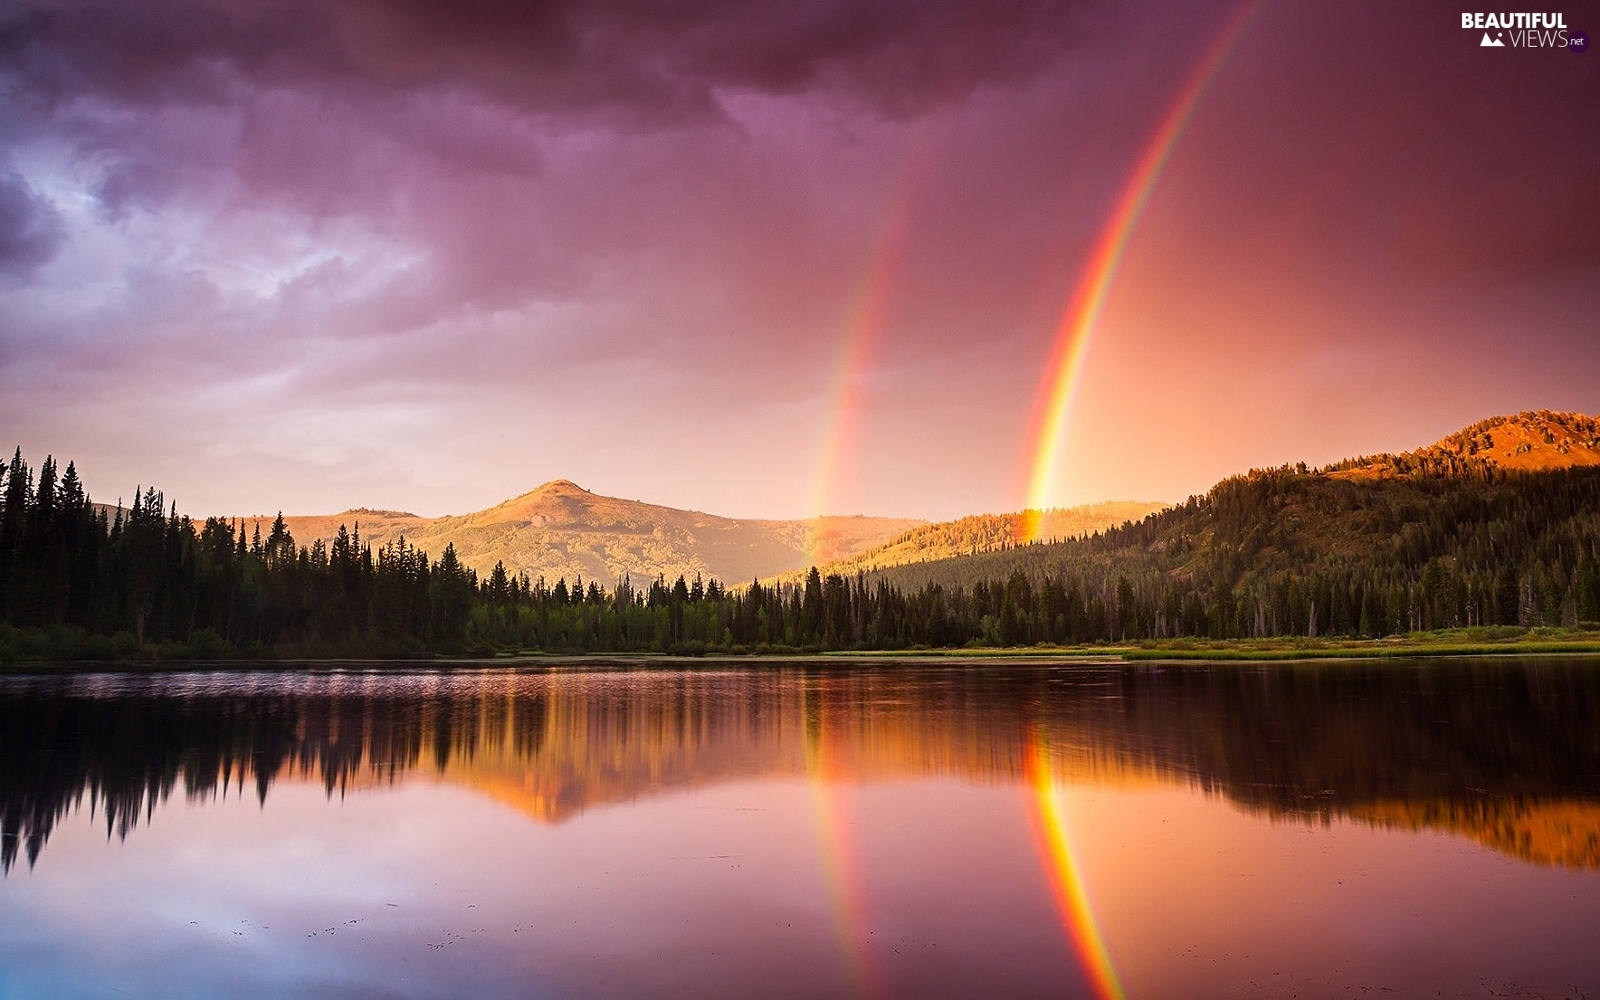 lake, Great Rainbows, forest, forest, Mountains